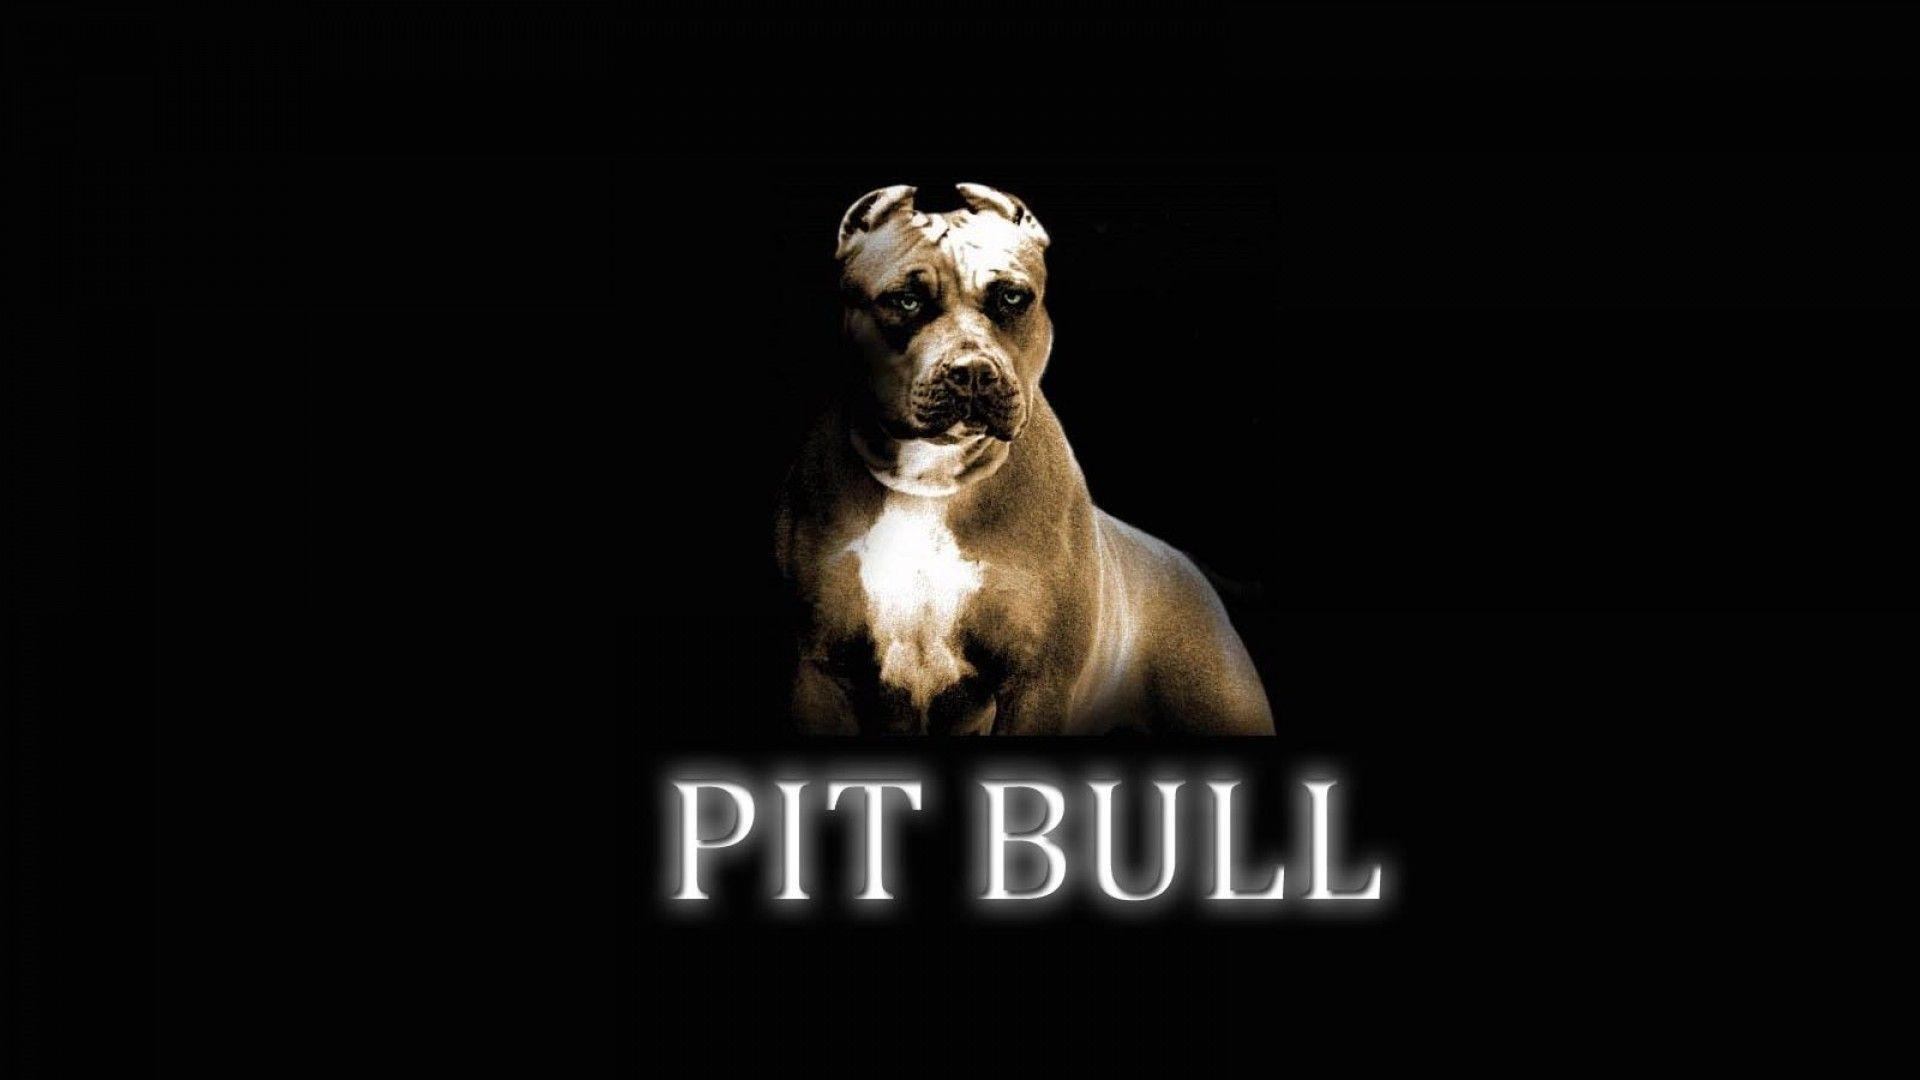 Pitbull Dog Wallpapers Wallpaper Cave